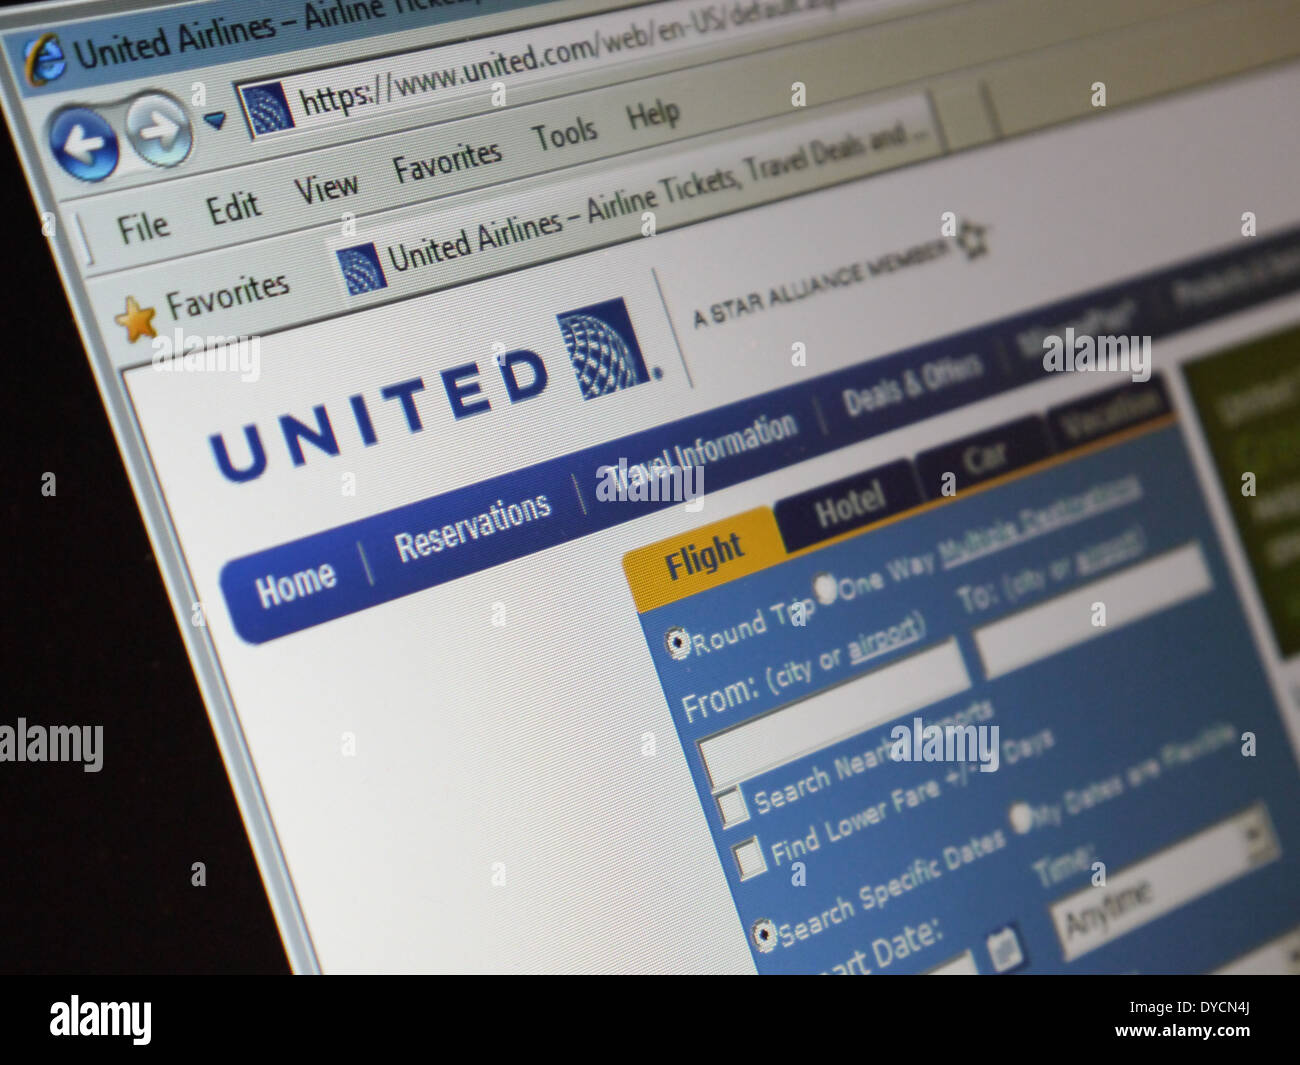 united airline website - Stock Image